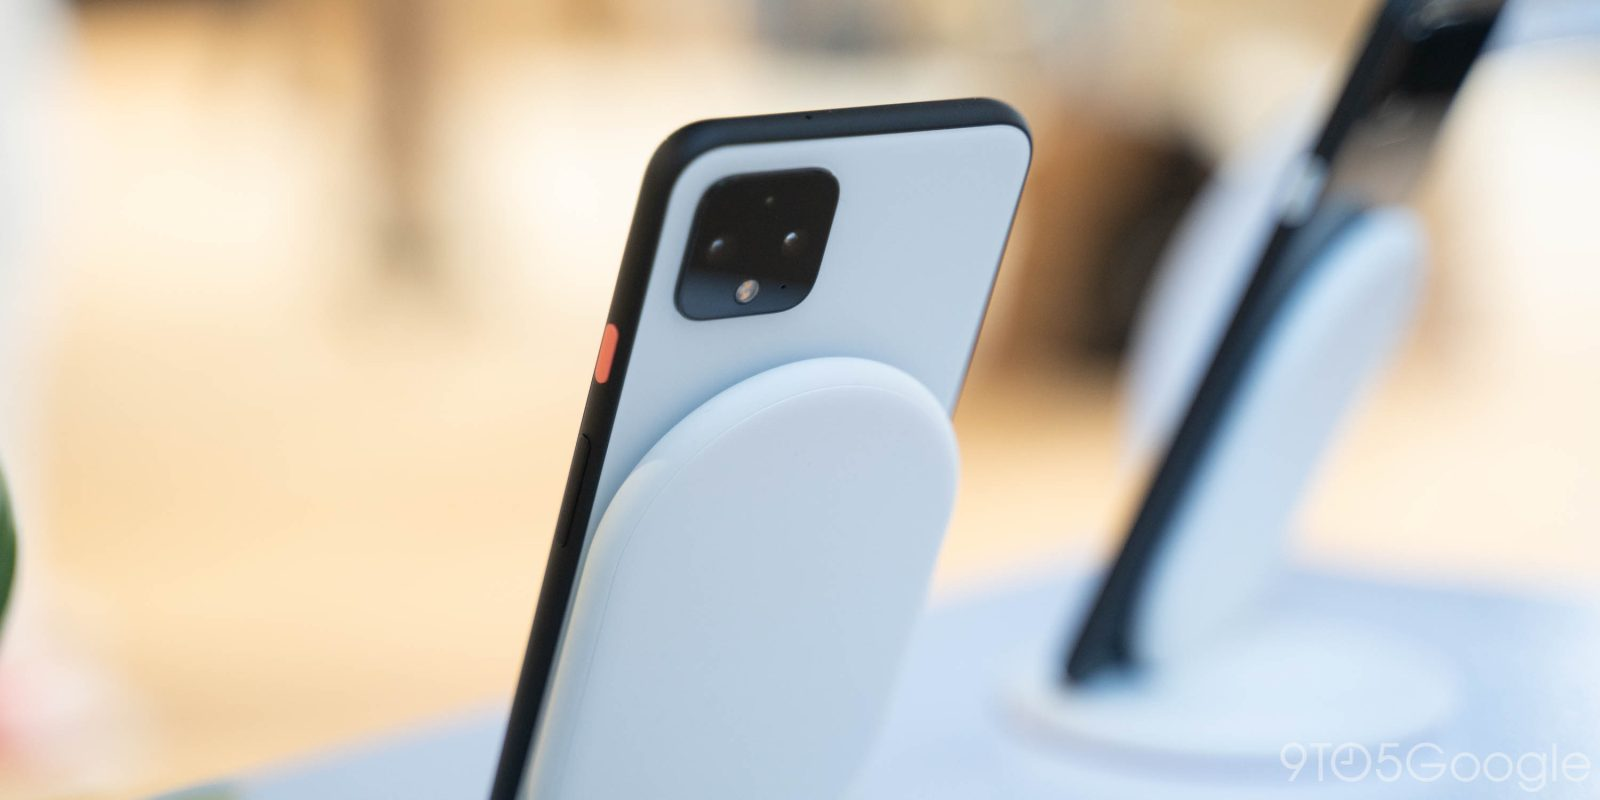 Google Pixel 4 camera earns 112-point score from DxOMark